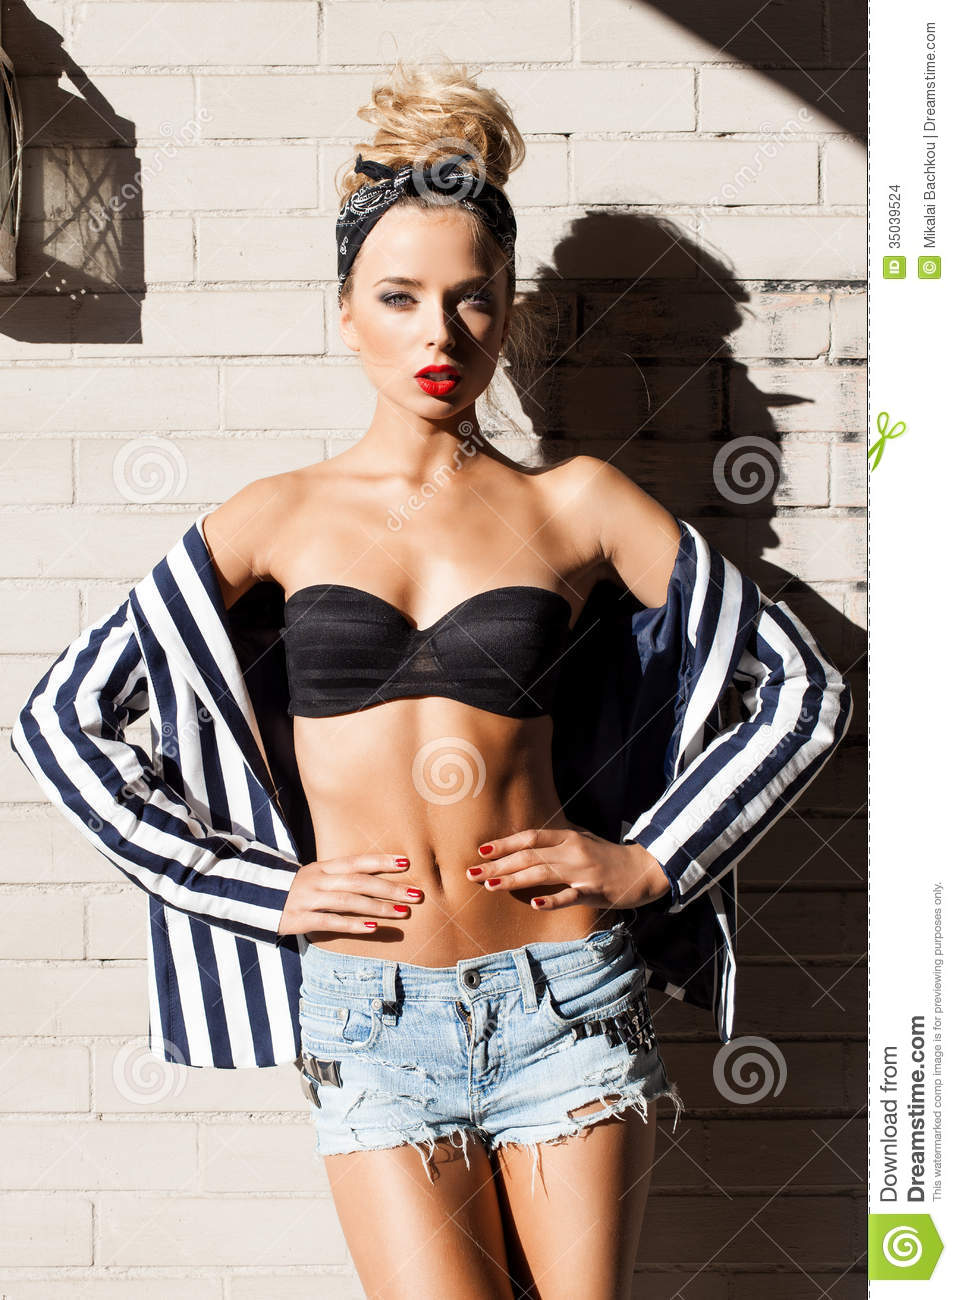 Beautiful Lady In Fashion Style Posing Against White Brick Wall Stock Photo Image 35039524